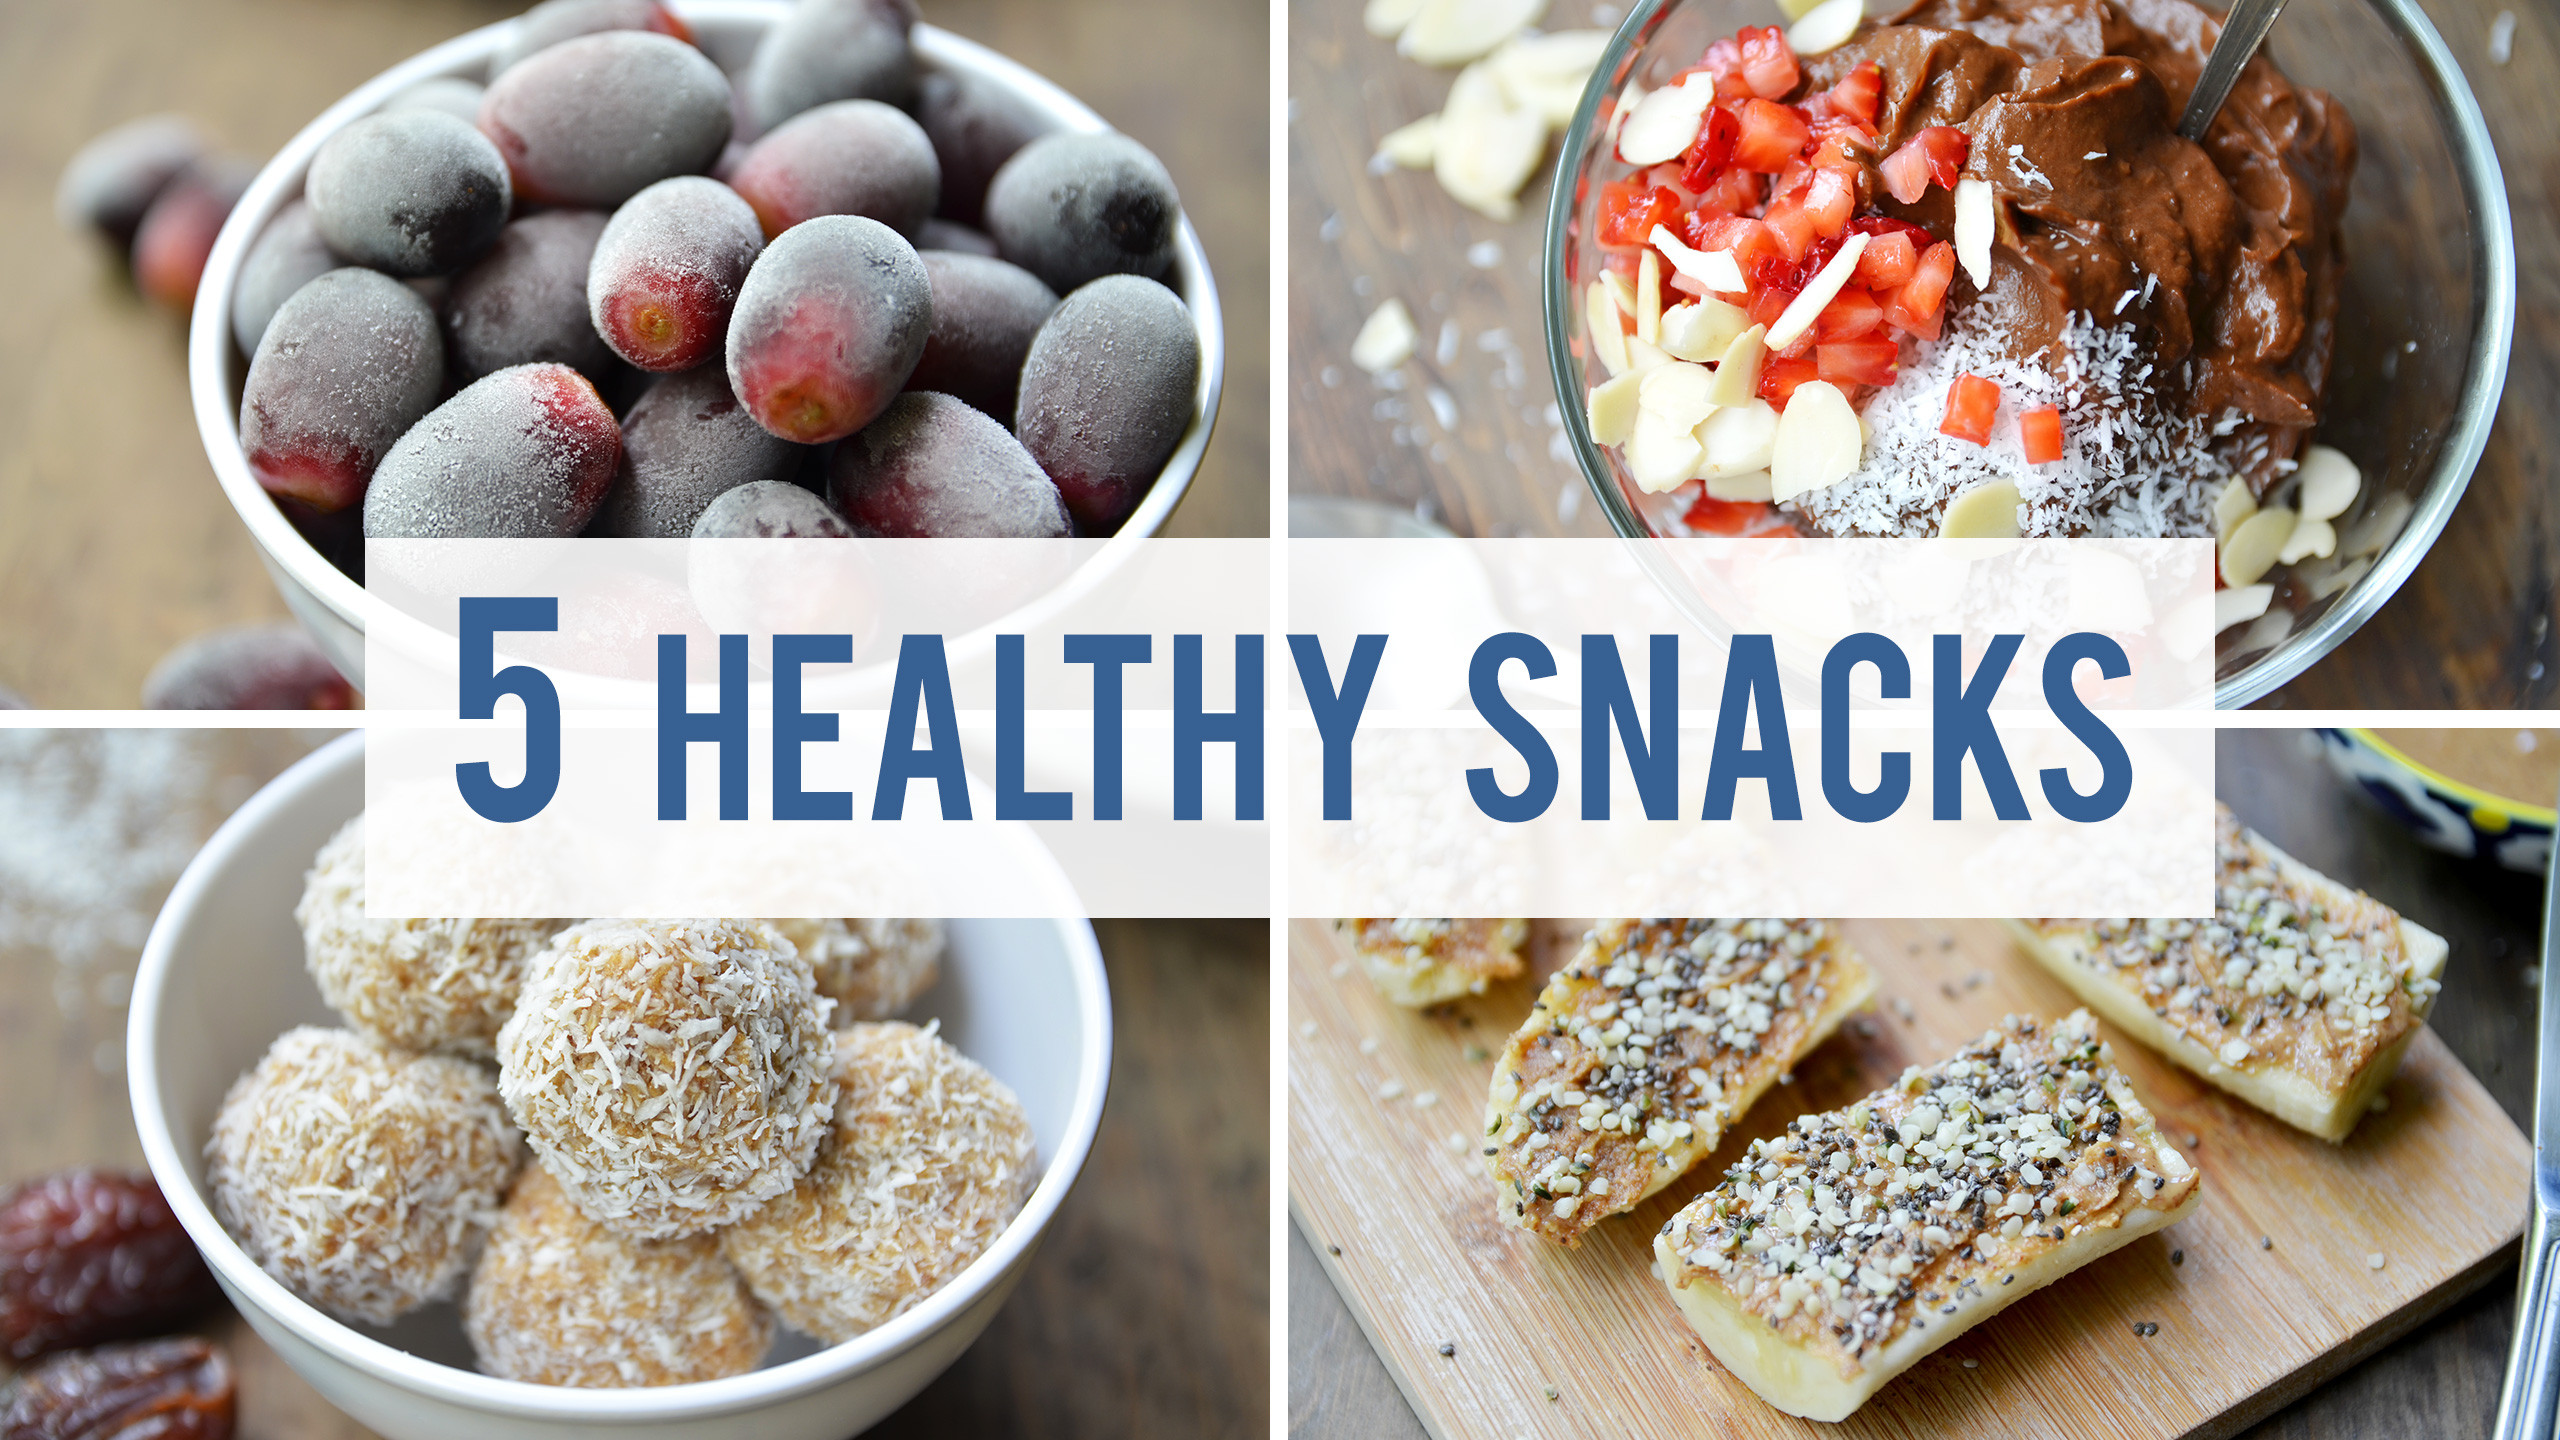 Recipes For Healthy Snacks  5 Healthy Snacks For Your Sweet Tooth Fablunch